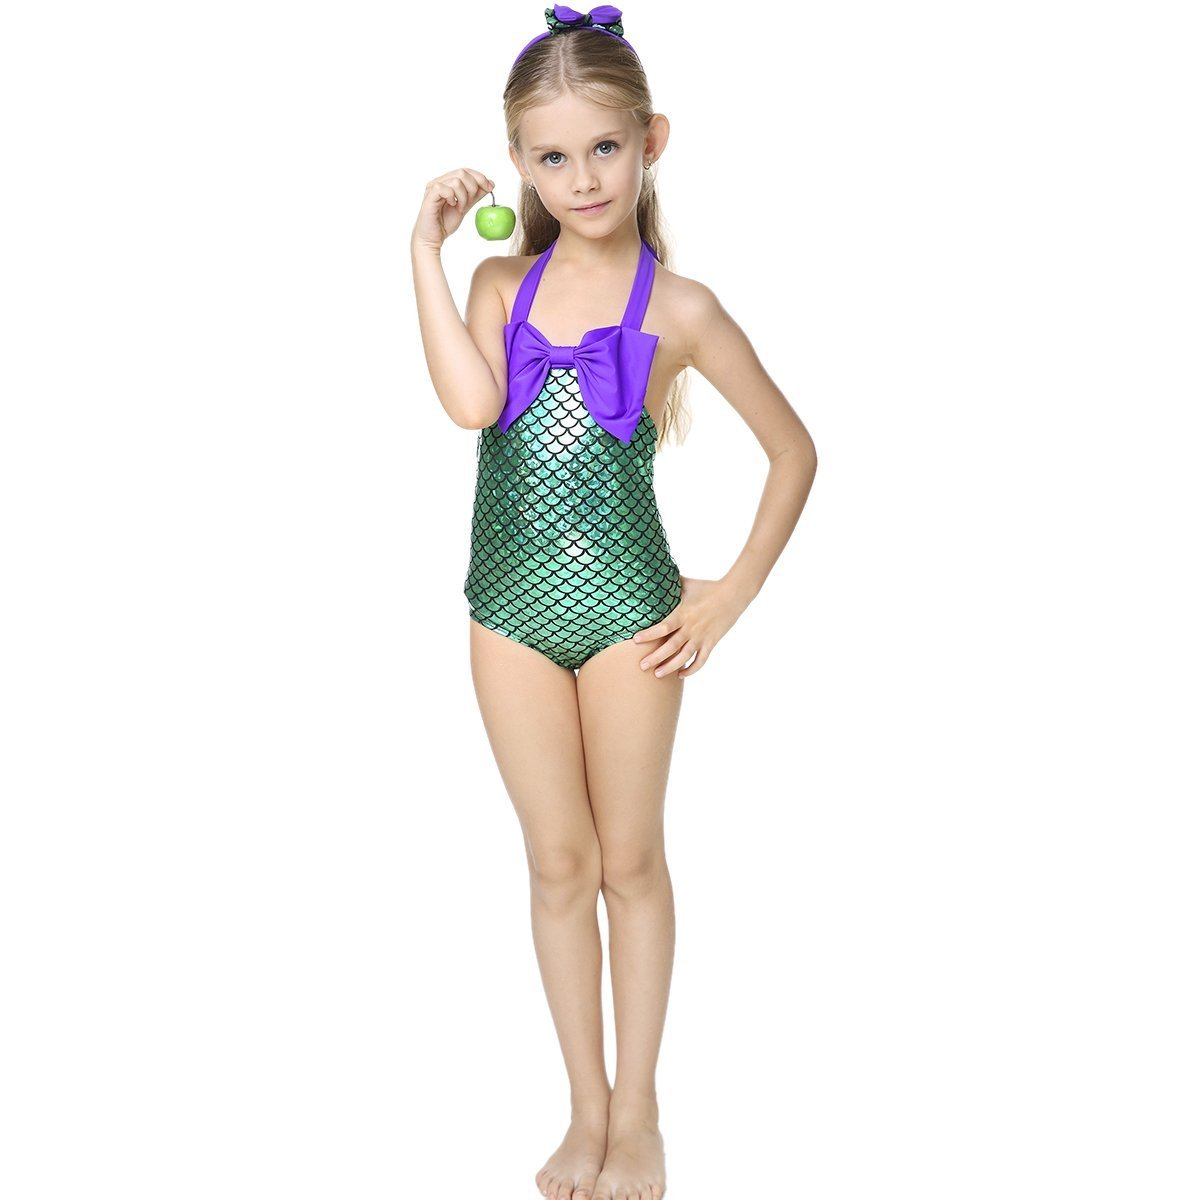 Find great deals on eBay for little girl bathing suit. Shop with confidence.